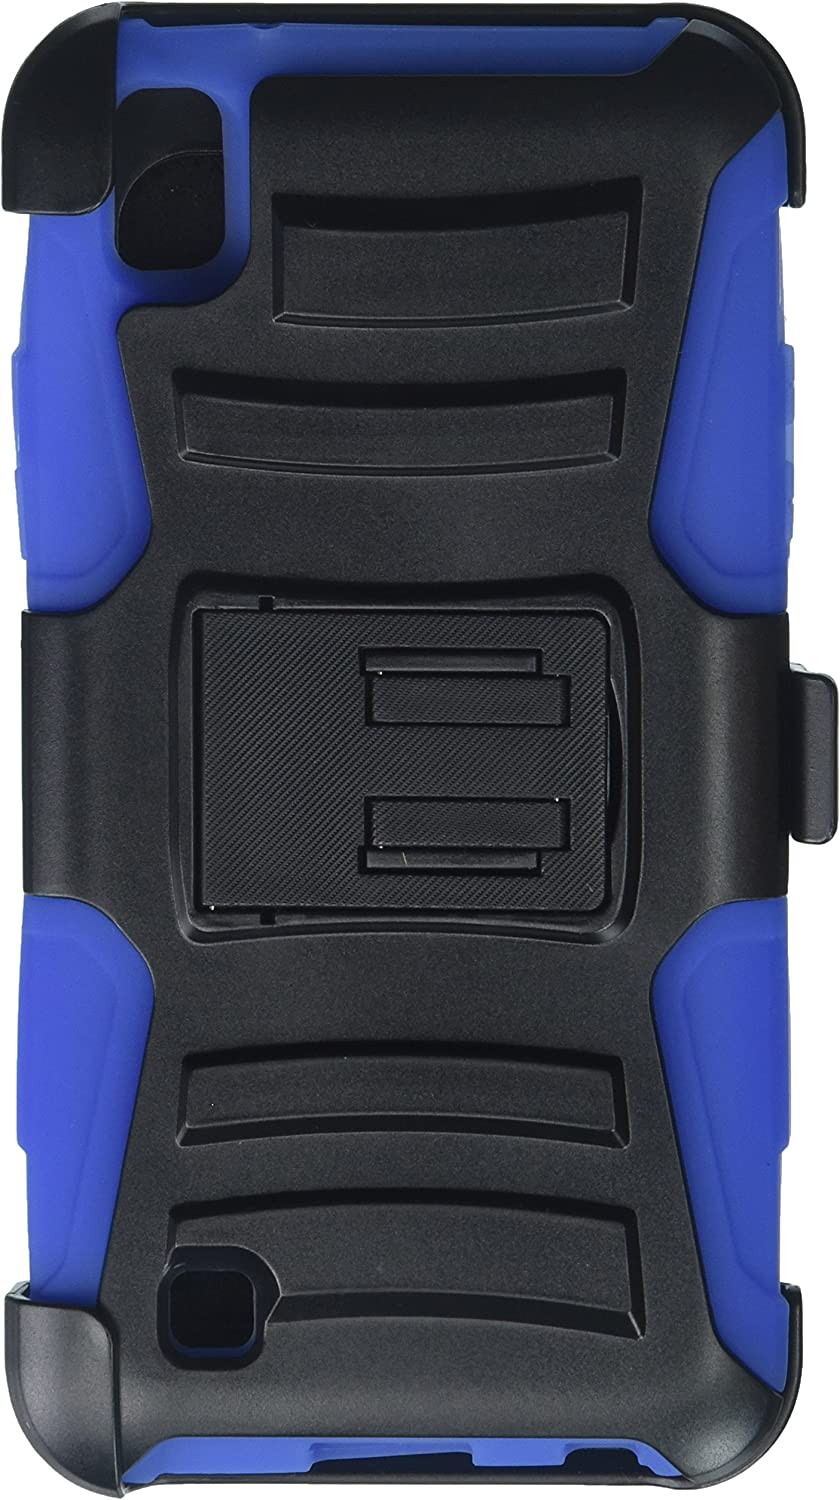 Eagle Cell Hybrid Armor Protective Case with Stand/Belt Clip Holster for LG X Power LS755/K450/K210 - SP Blue/Black